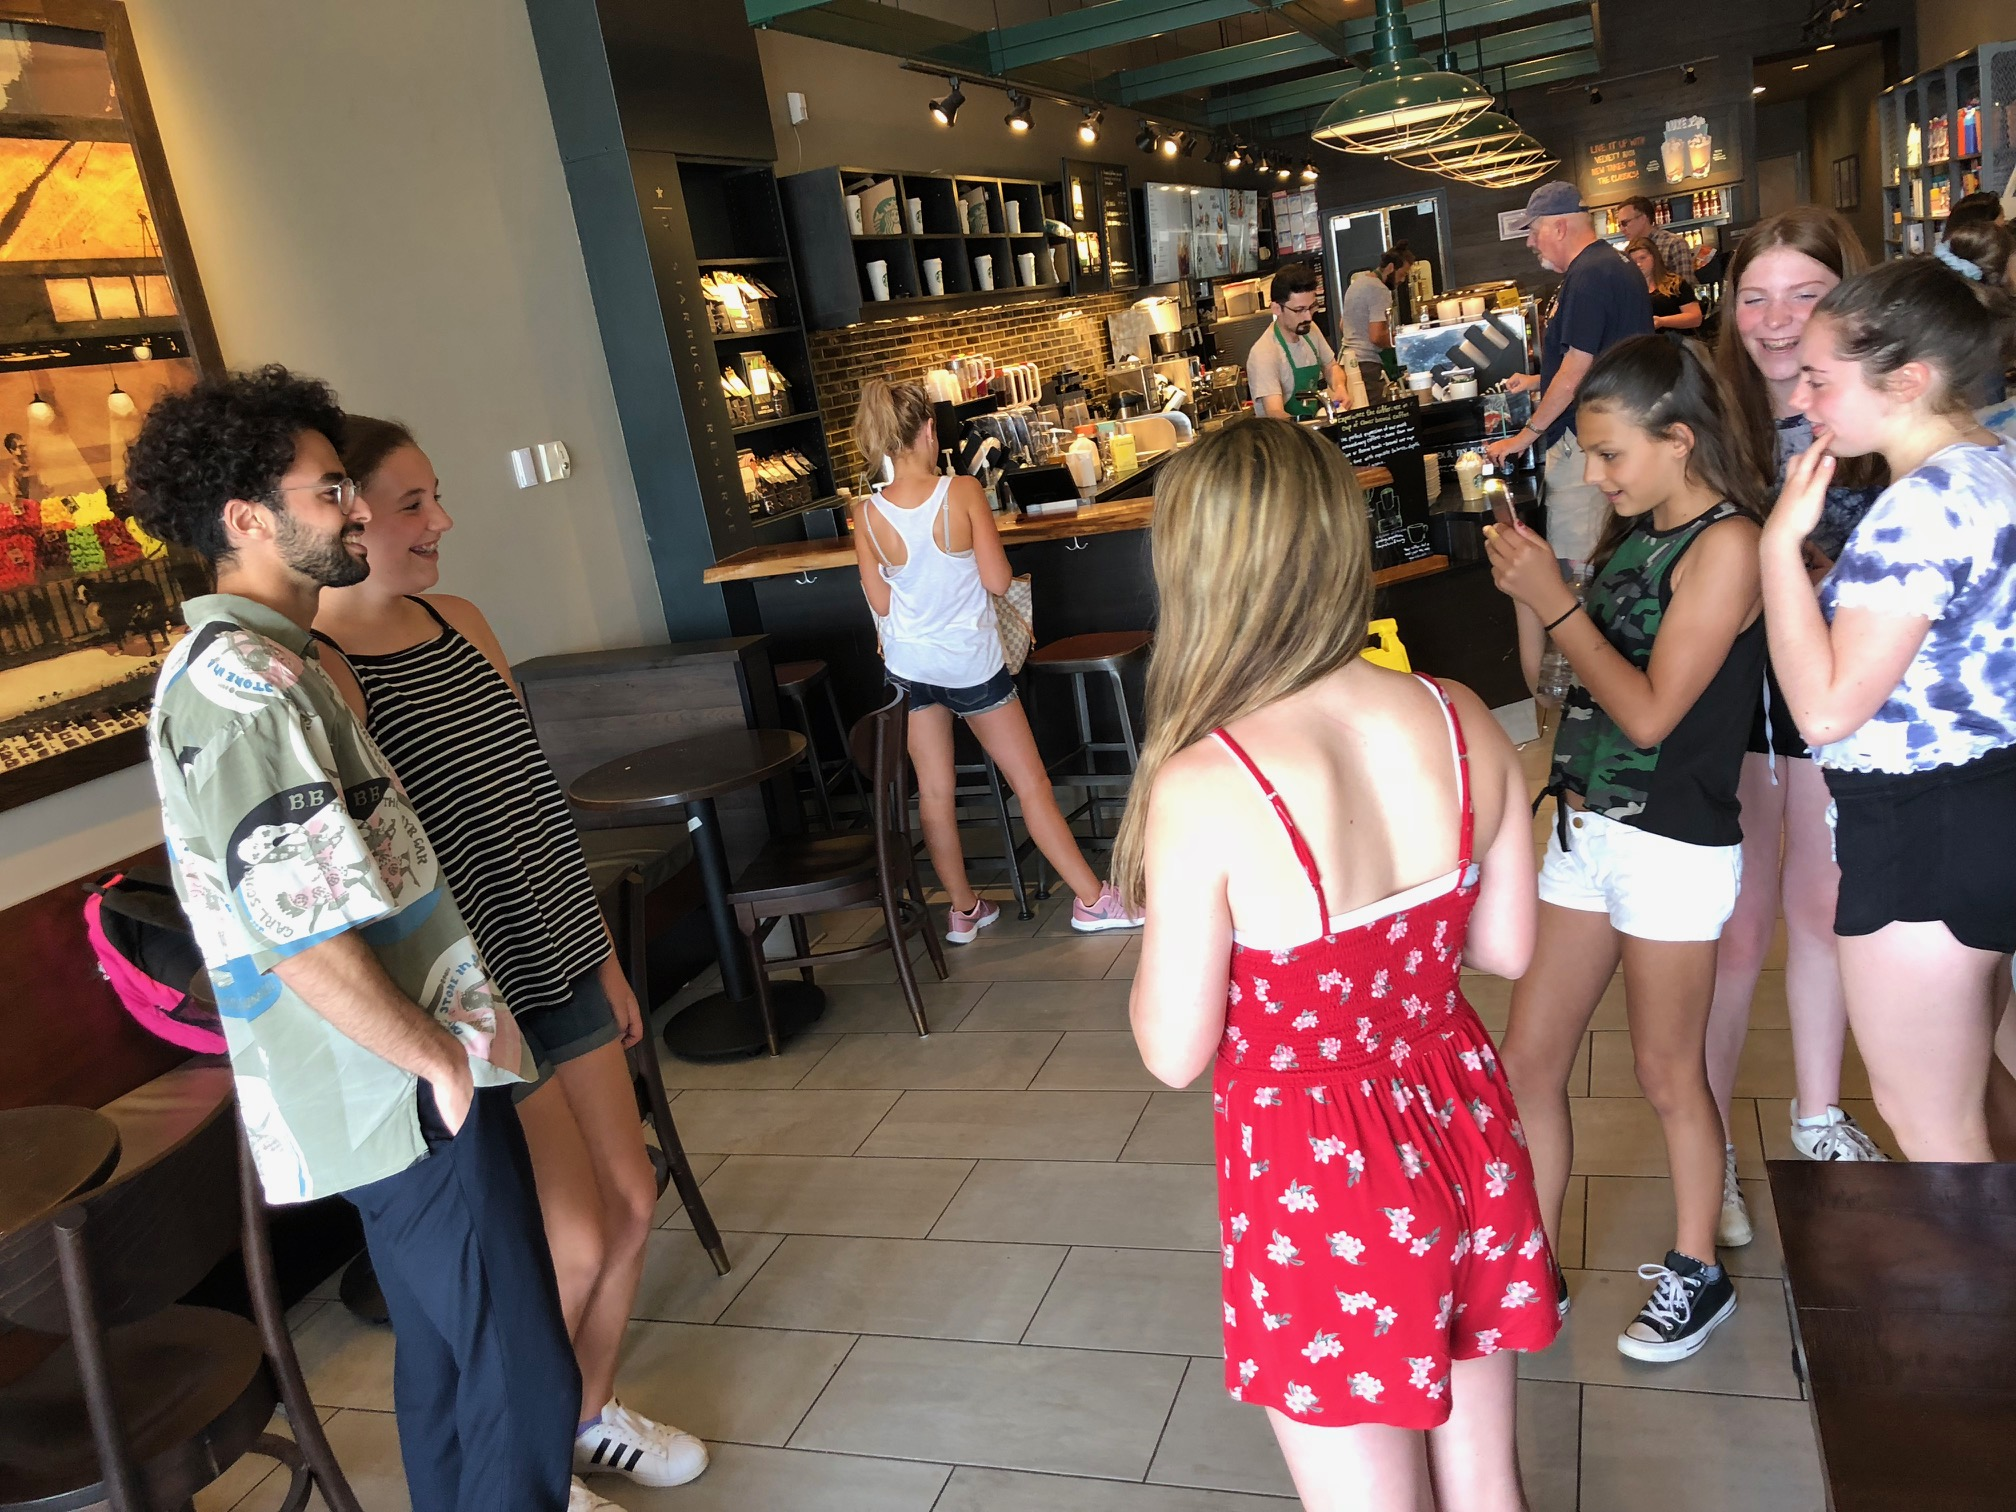 Zach Matari at Starbucks 06.20.18.jpg